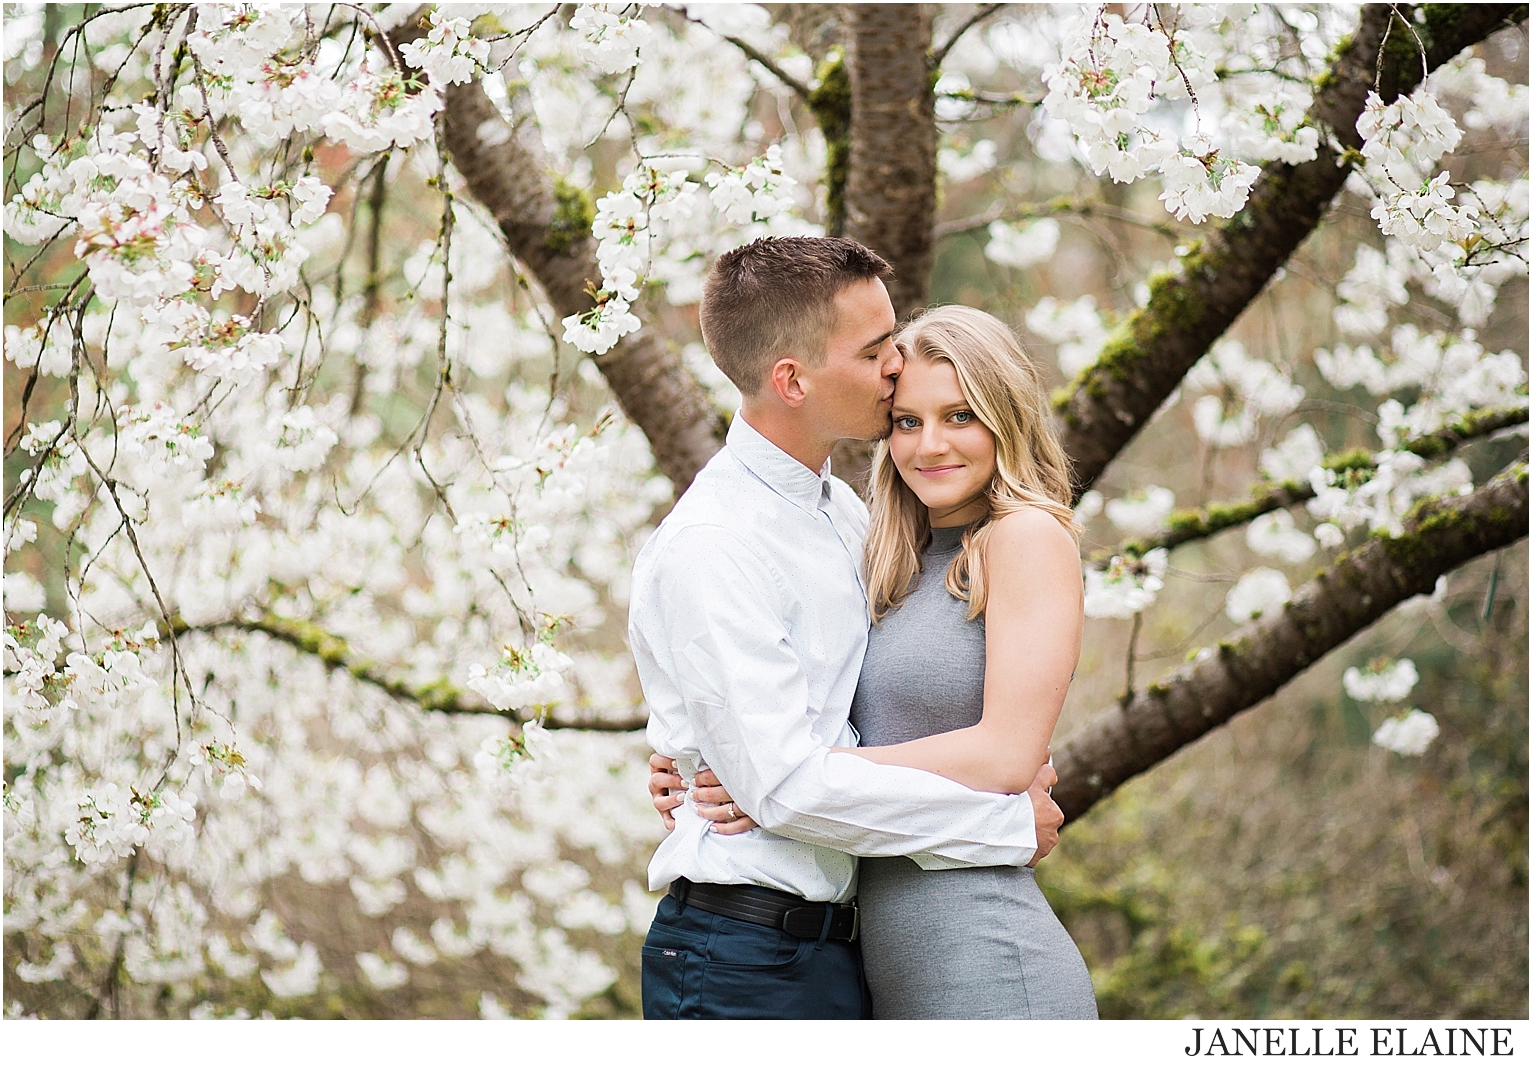 tricia and nate engagement photos-janelle elaine photography-16.jpg